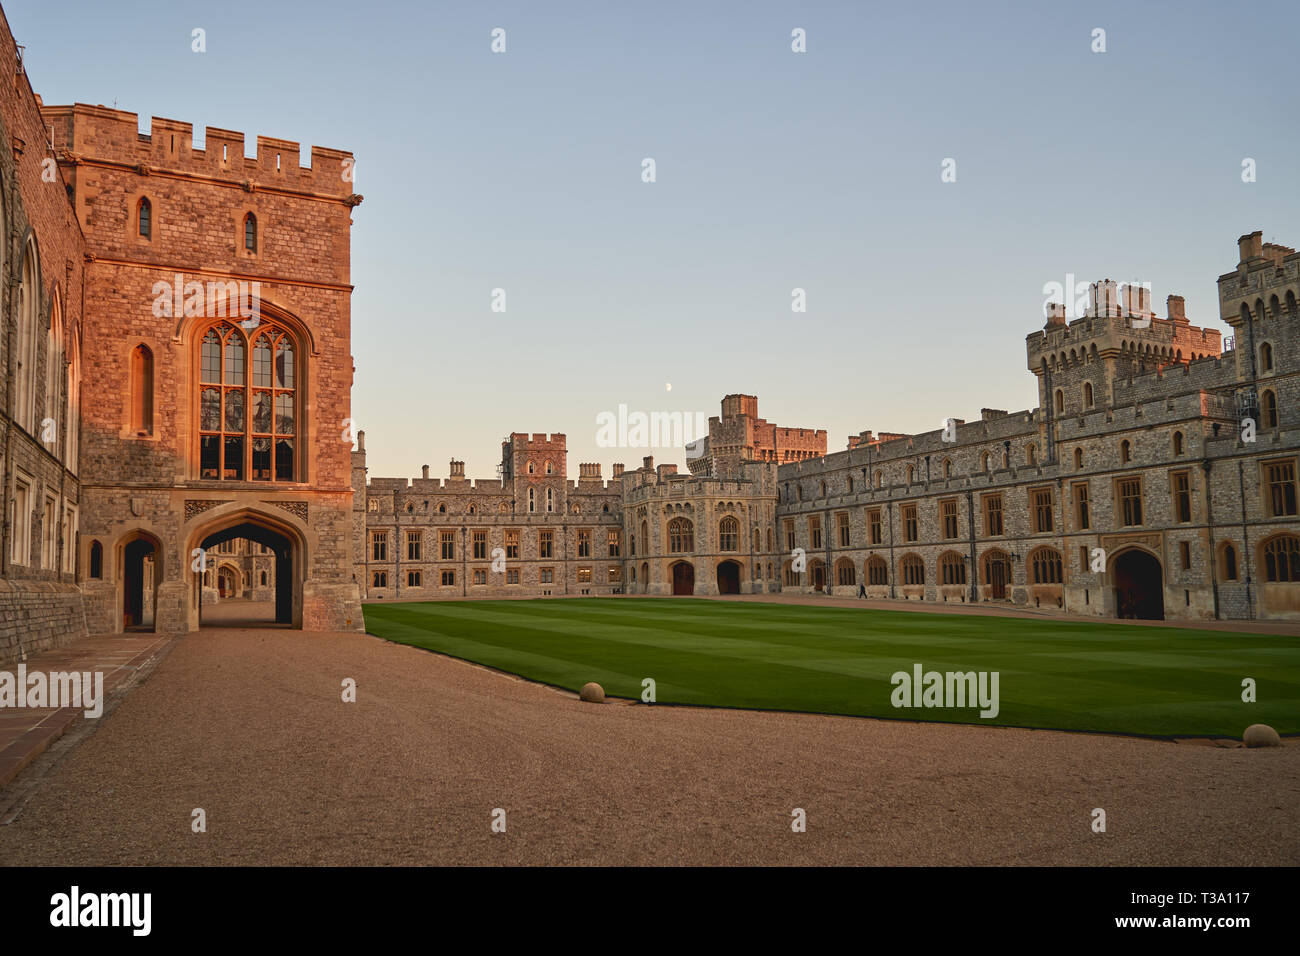 The South Wing of the Upper Ward; the Official Entrance to the State Apartments is on the left. Windsor Castle (UK). - Stock Image